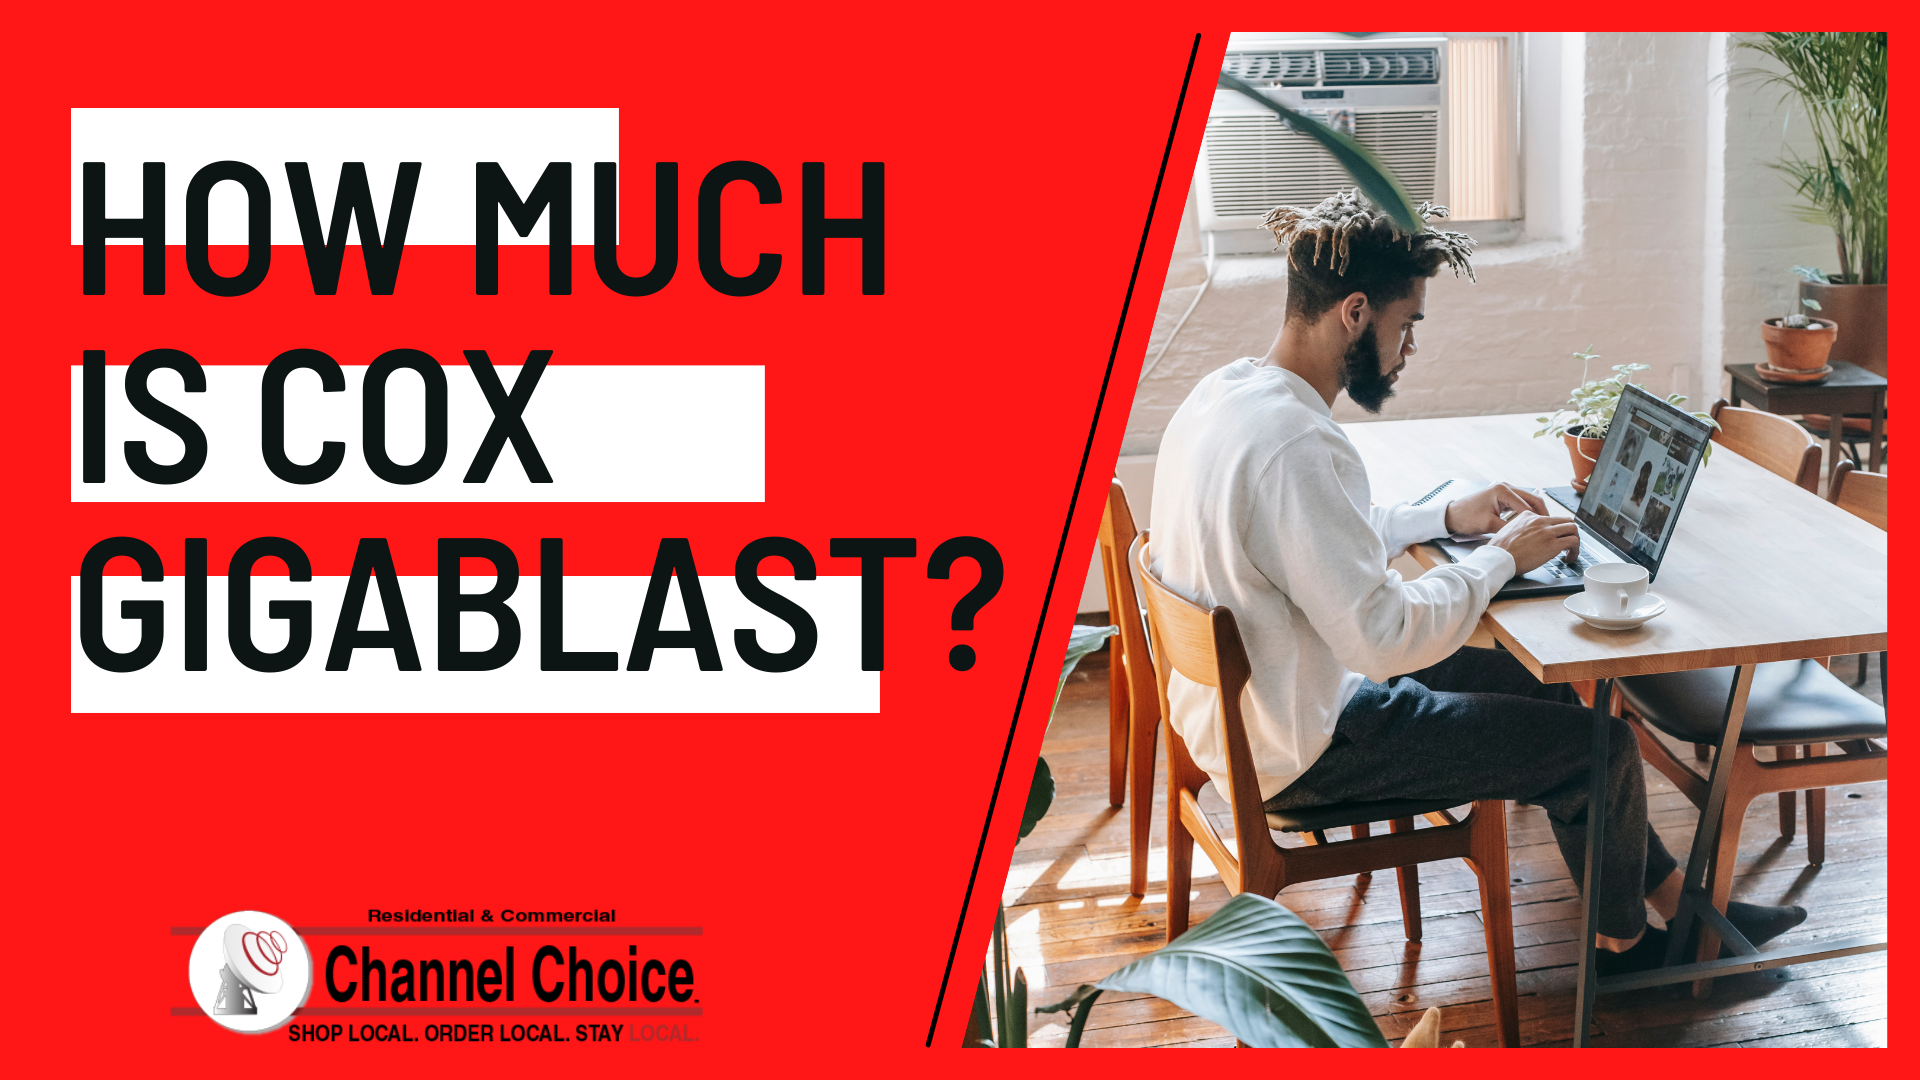 how much is cox gigablast